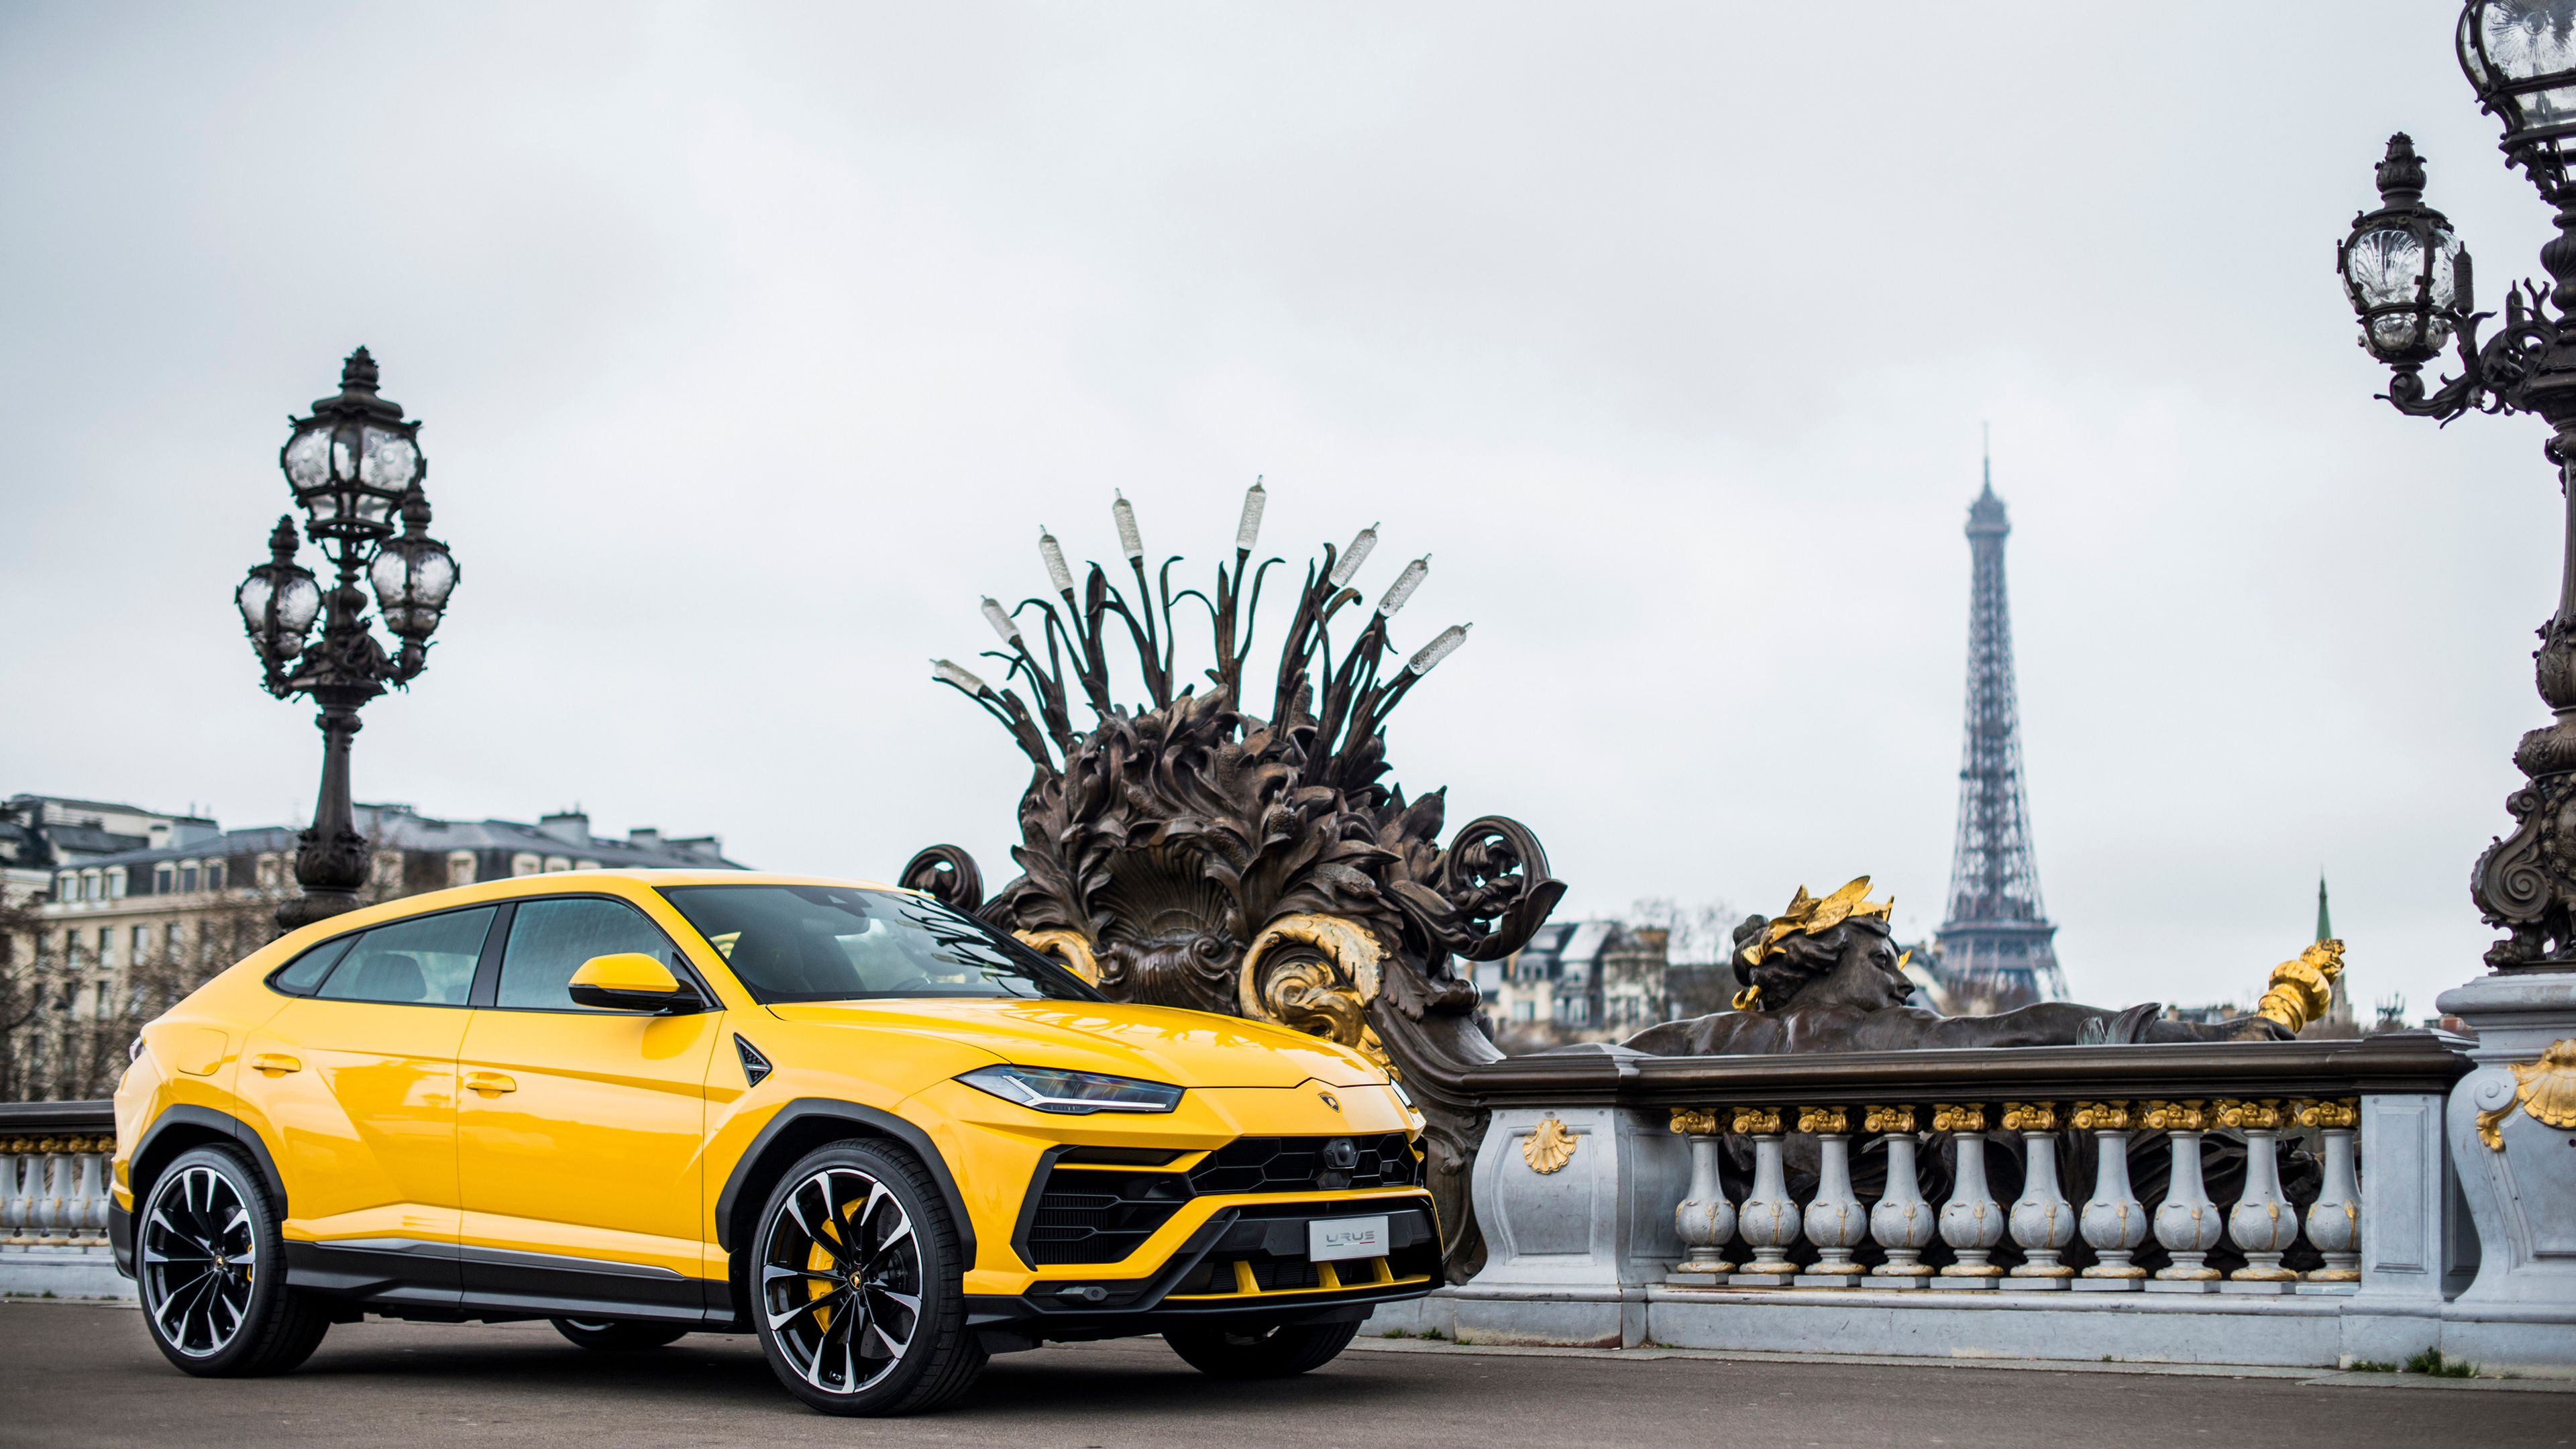 2018 Lamborghini Urus Suv 4k Wallpapers Lamborghini Wallpapers